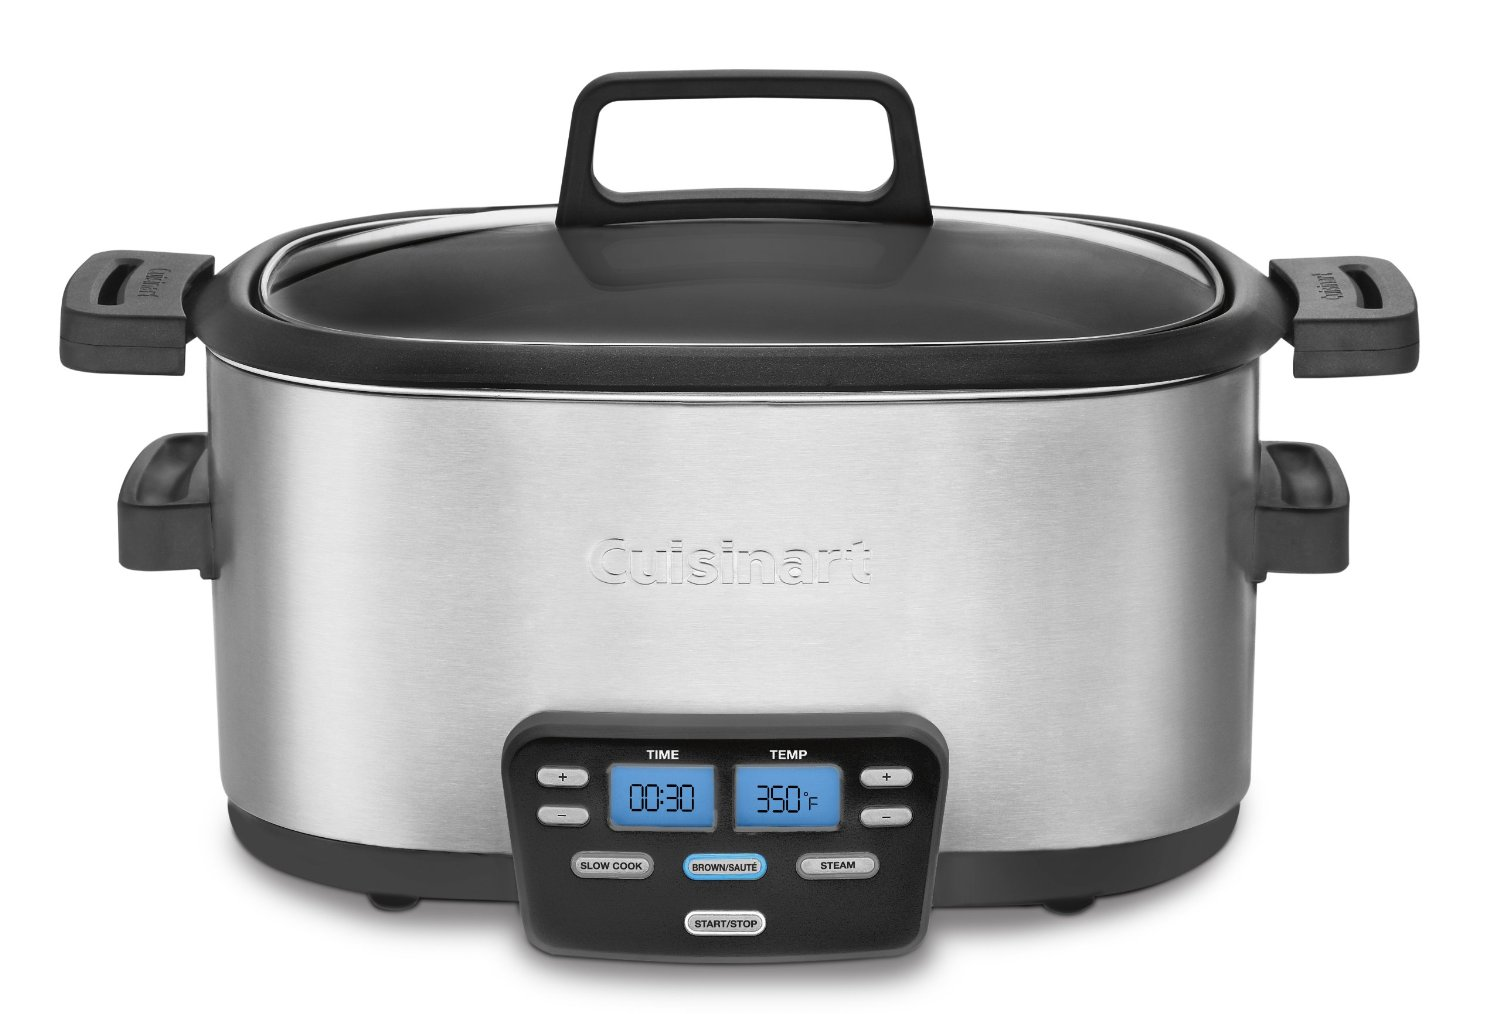 Superb Cuisinart 3 In 1 Cook Central